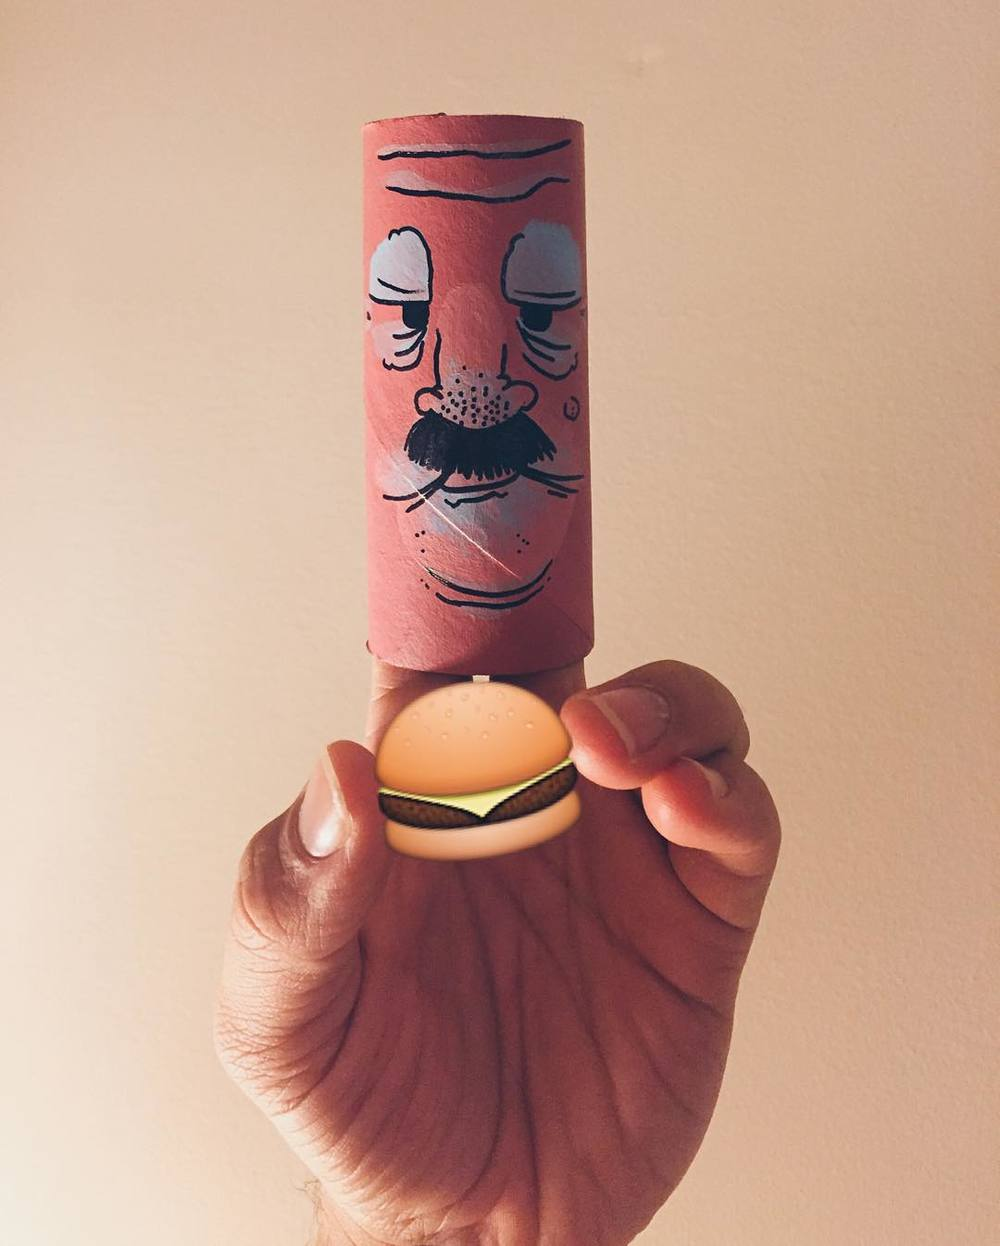 Trey Patterson doesn't have much. What he does have is burger Wednesday. #puppet  http://ift.tt/1iTKYZT